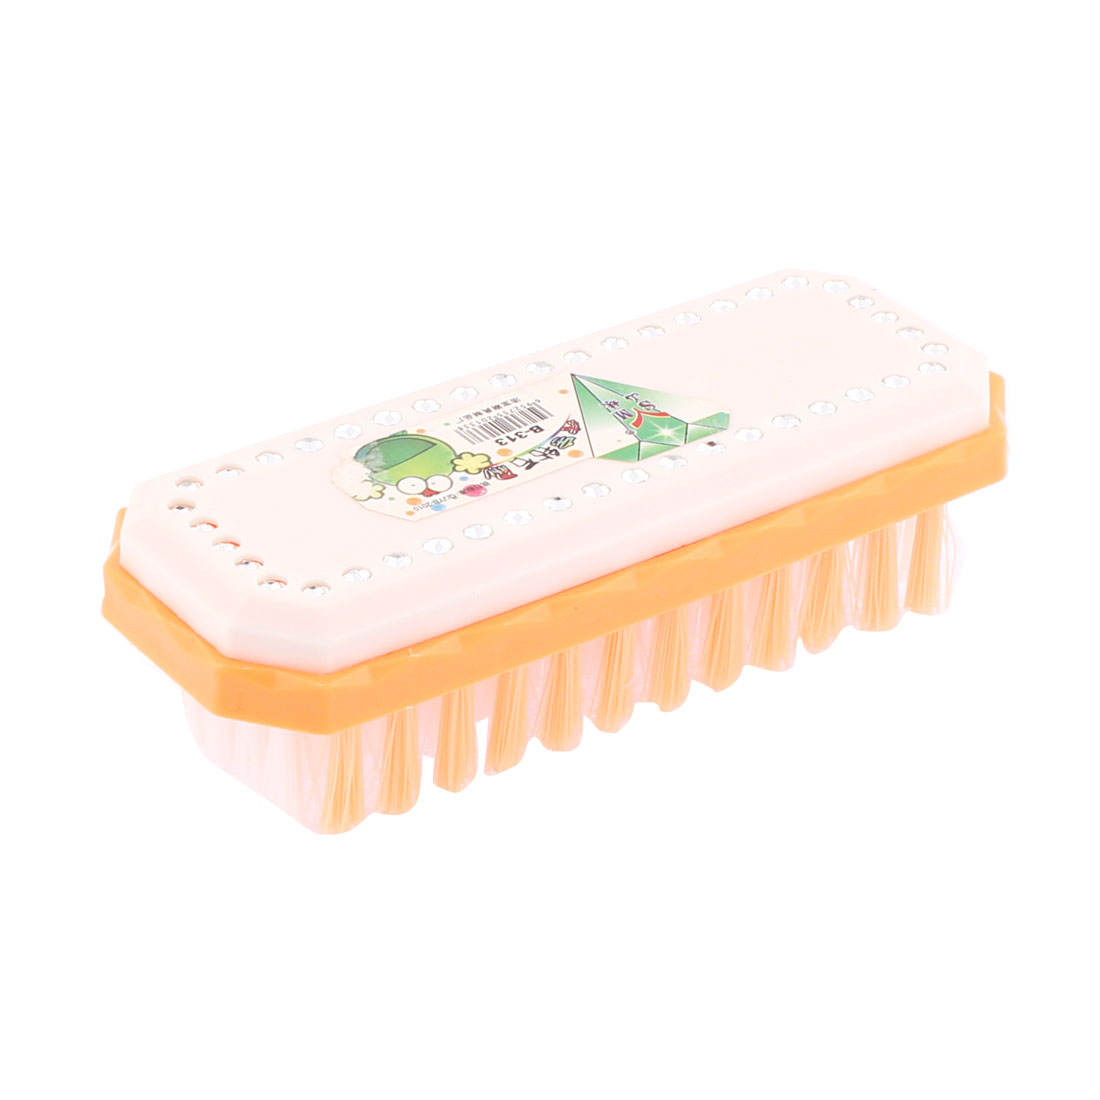 Home Laundry Clothes Shoes Scrubbing Brush Orange White